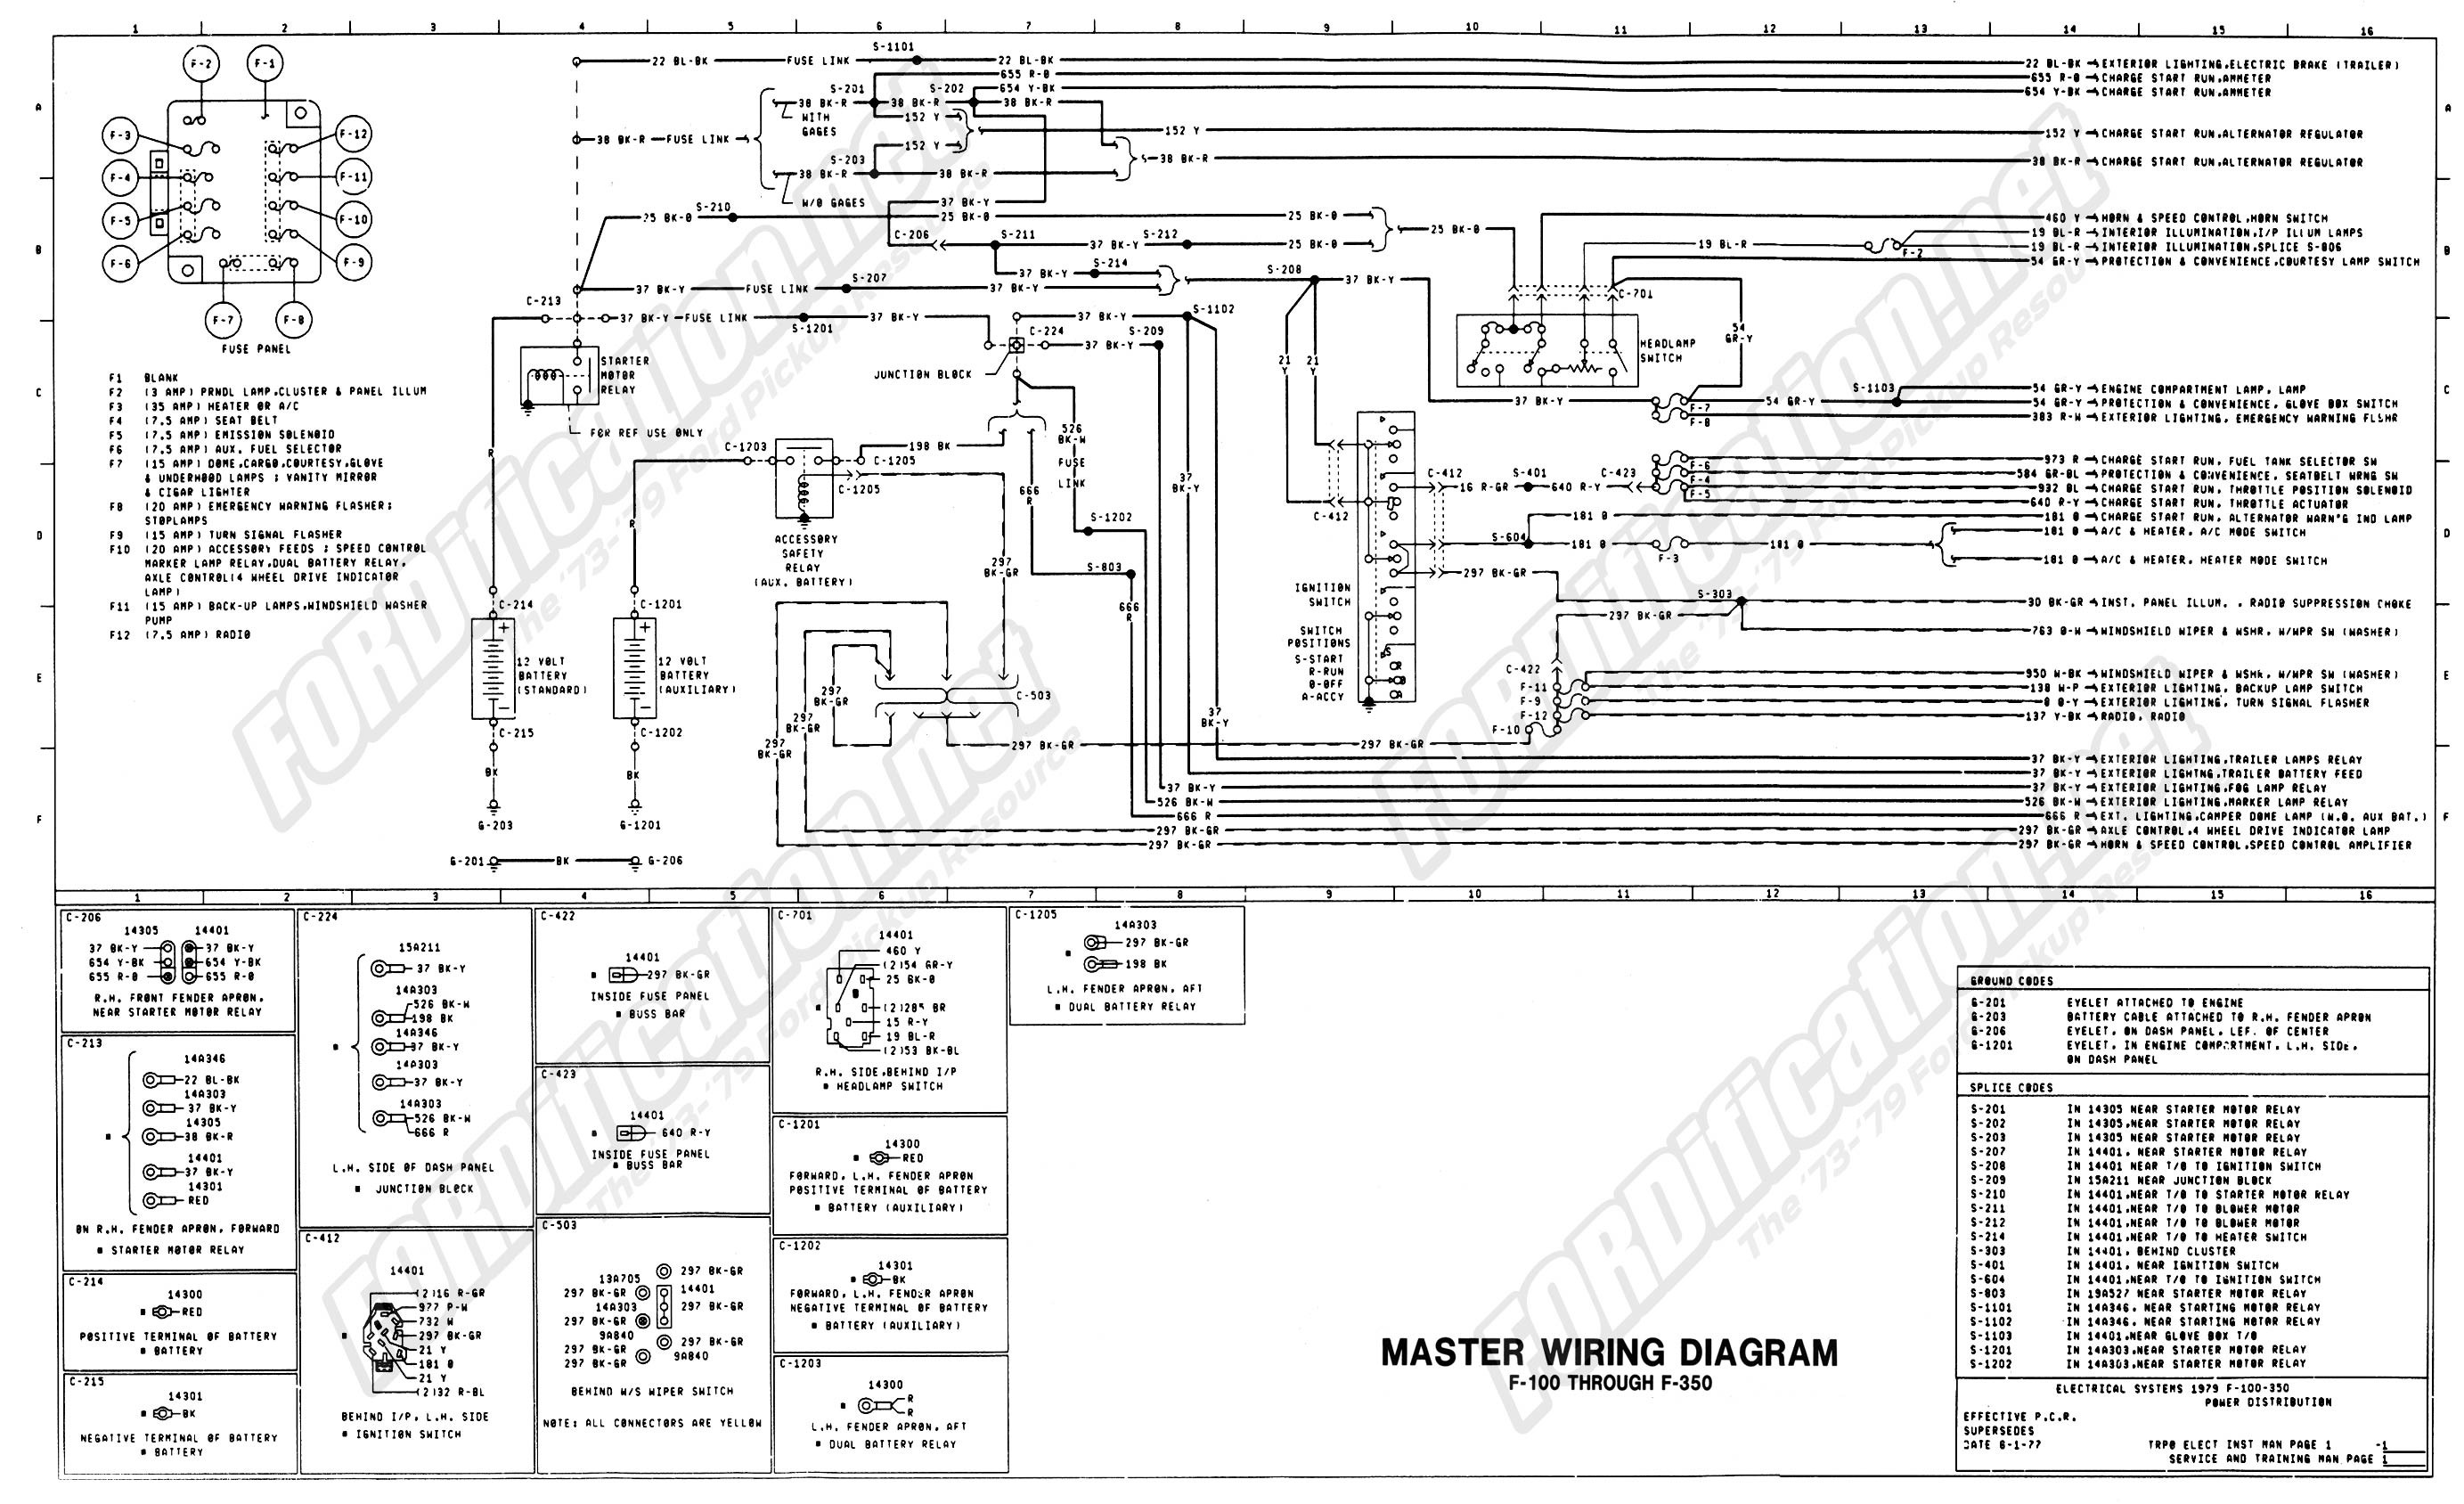 2003 ford Ranger Engine Diagram 79 F150 solenoid Wiring Diagram ford Truck Enthusiasts forums Of 2003 ford Ranger Engine Diagram